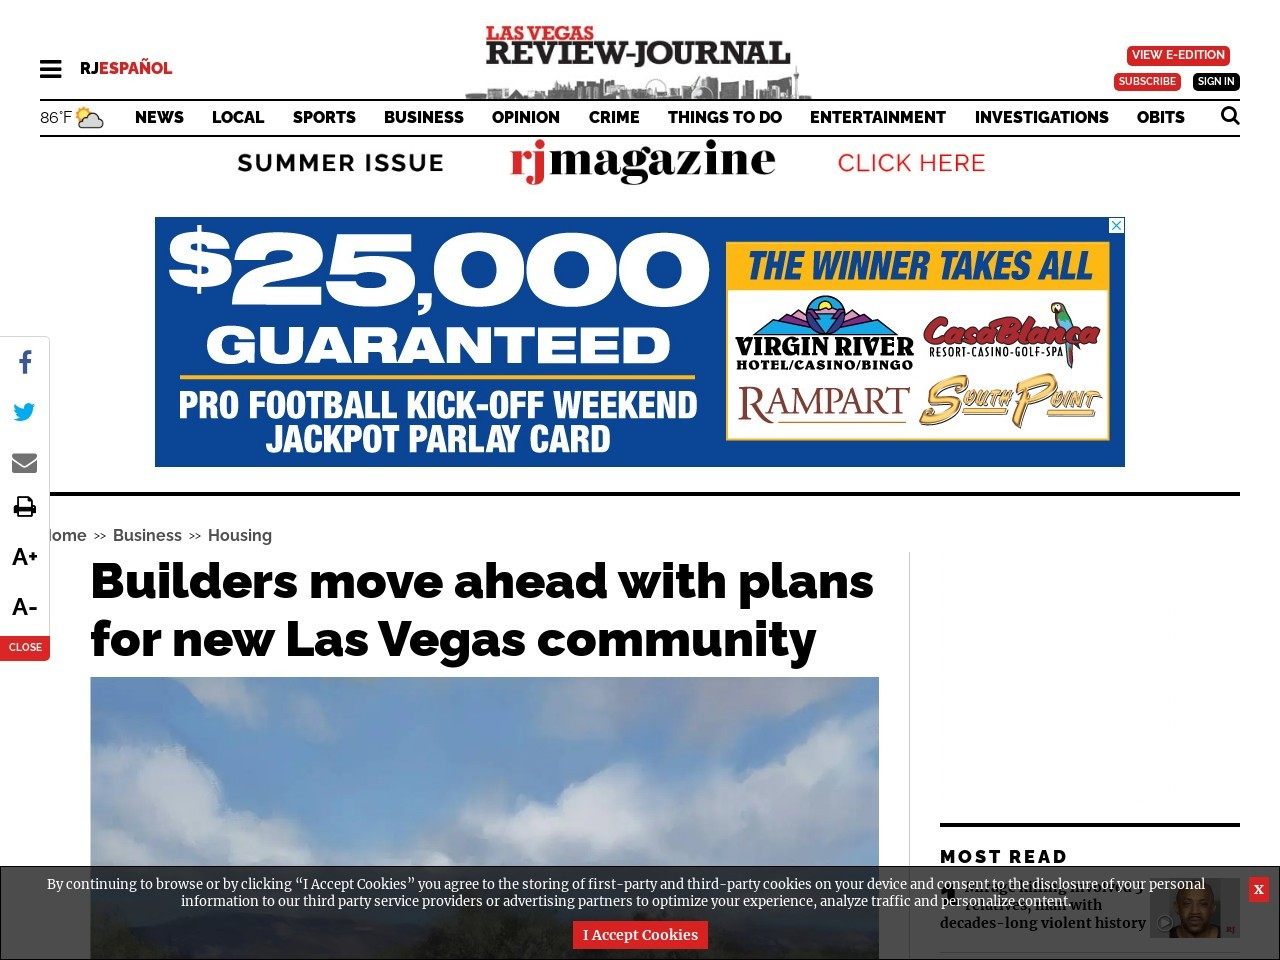 Builders move ahead with plans for new Las Vegas community